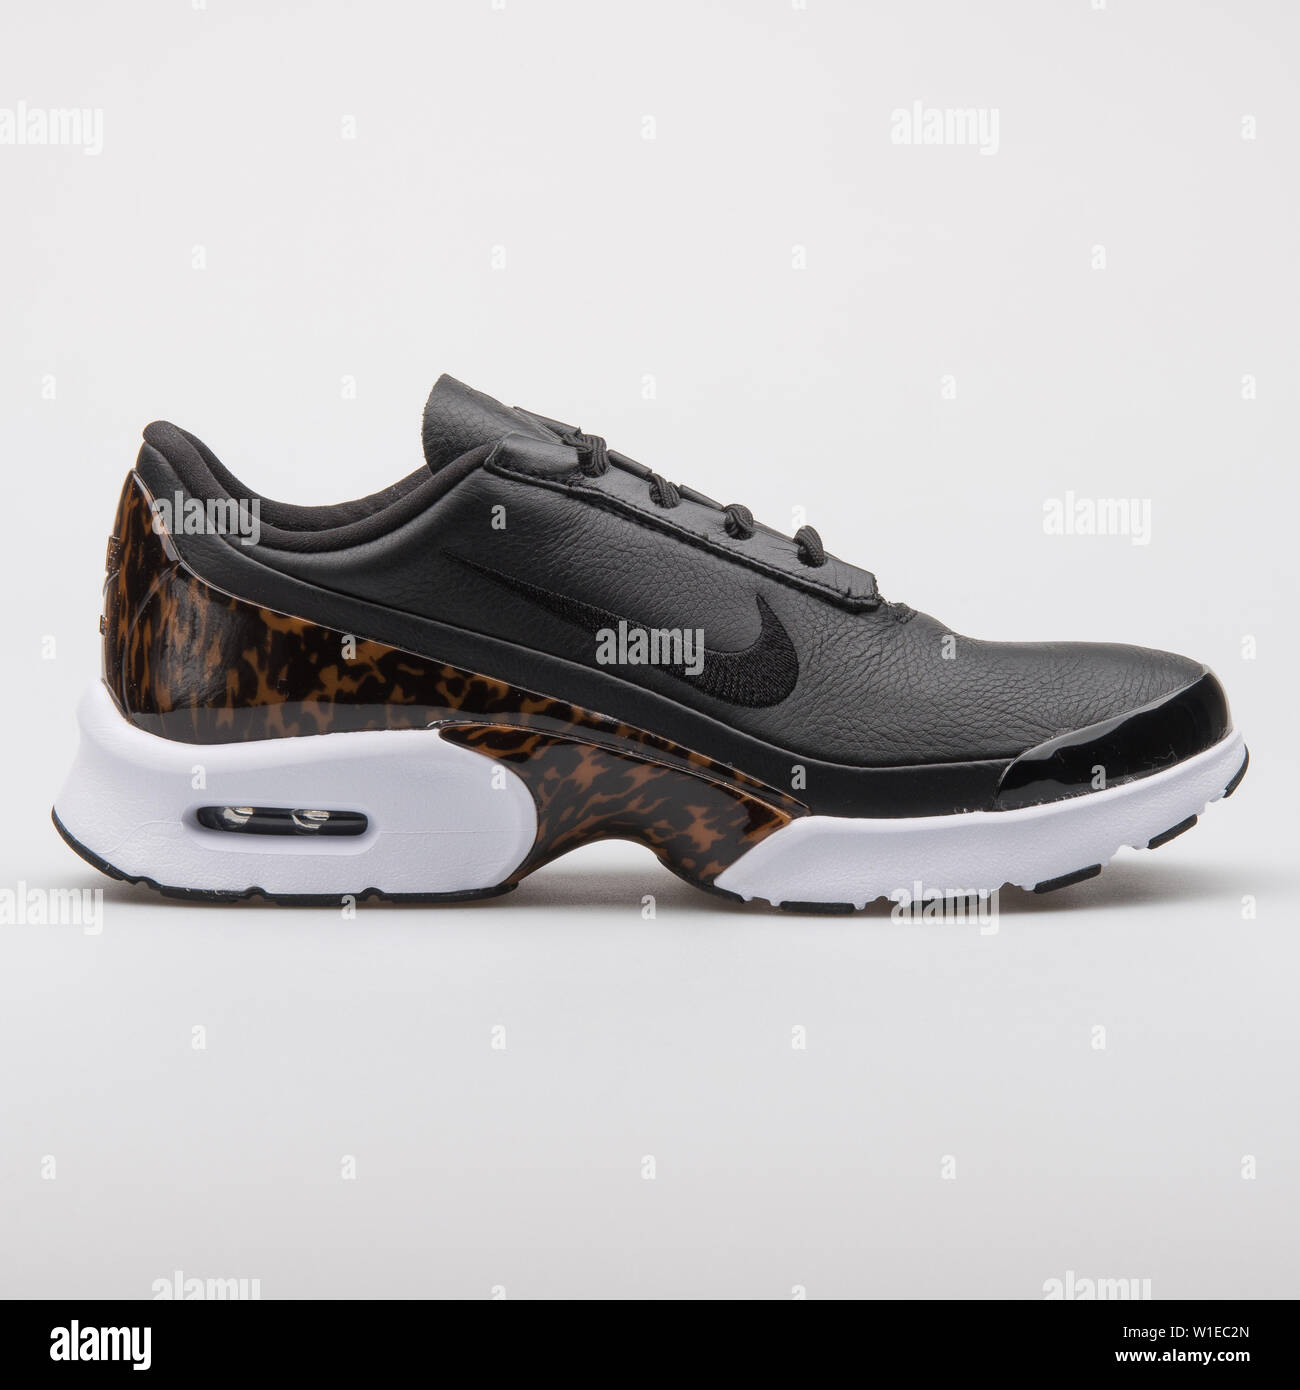 Nike Air Max Jewell Lx Sneakers In Black Leather | Black